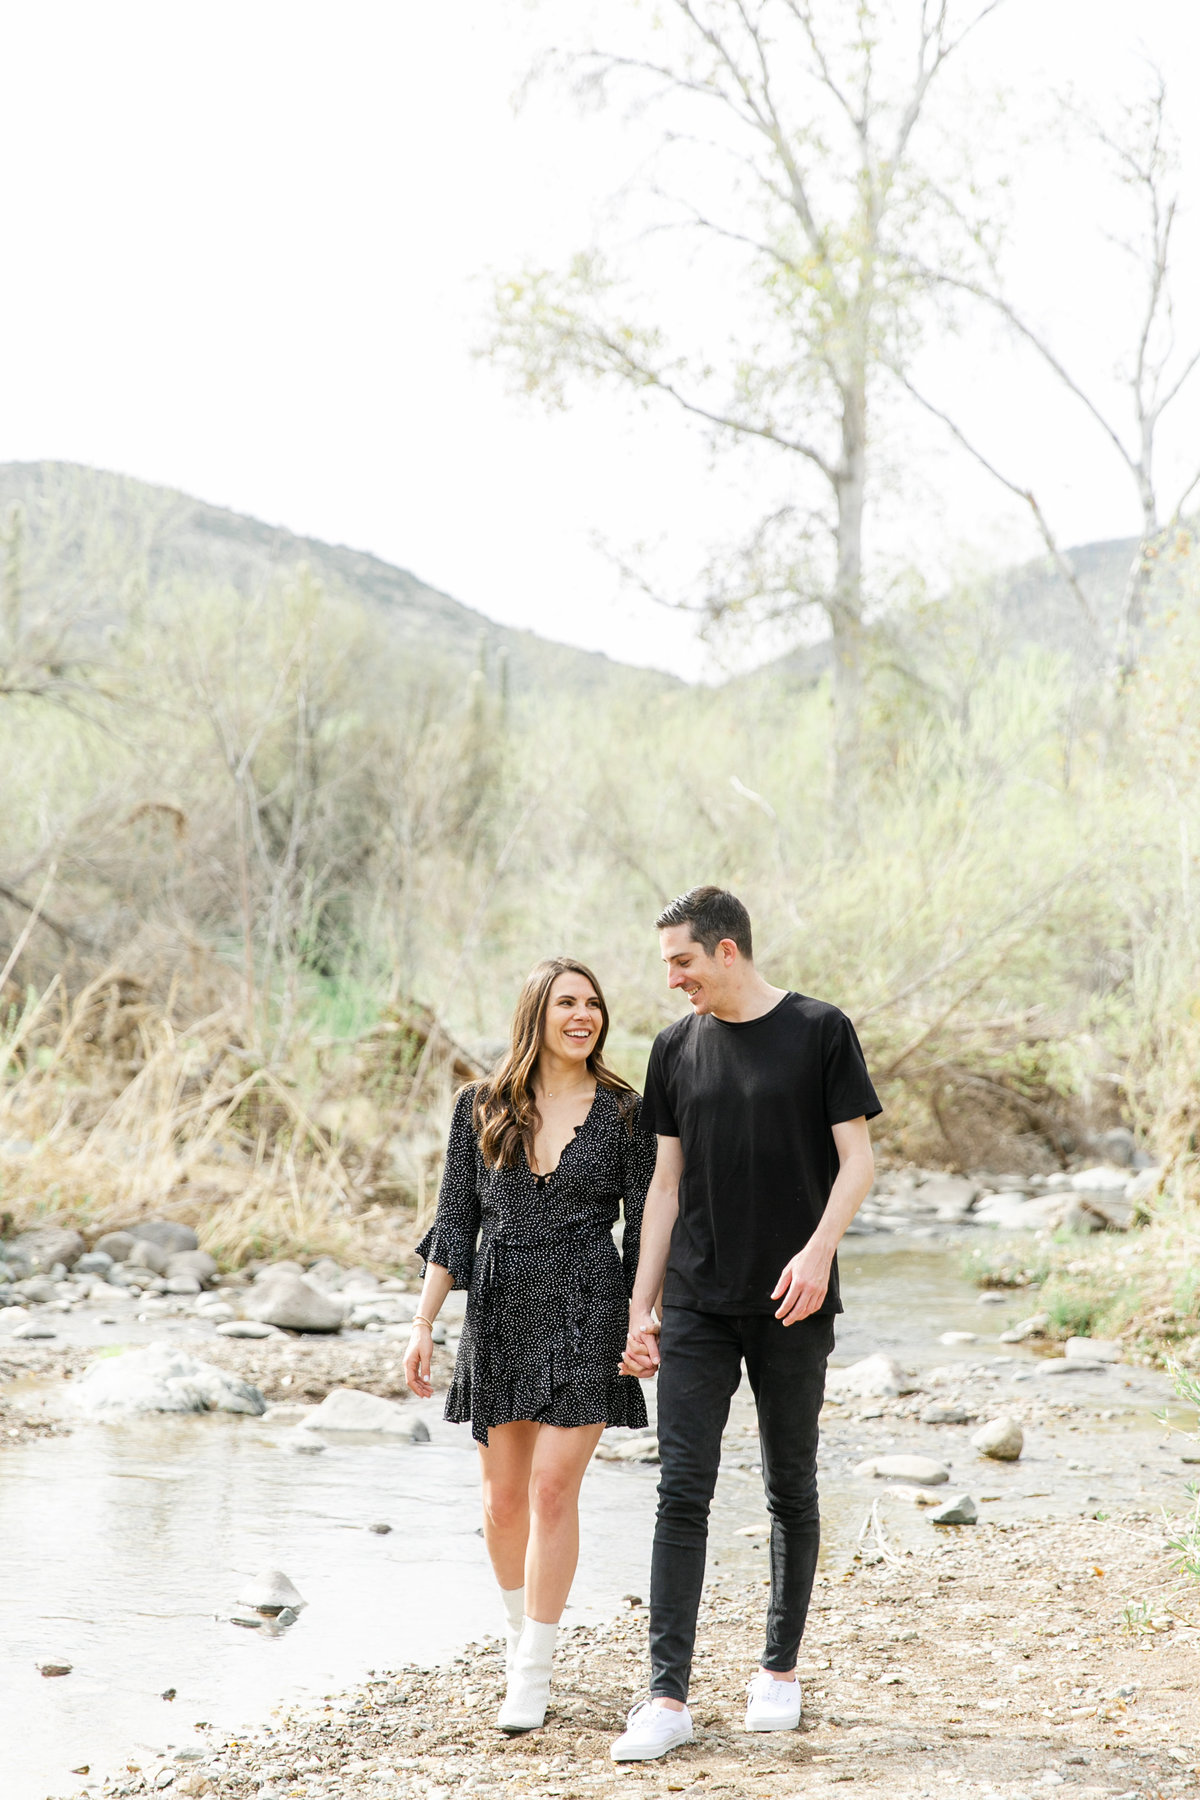 Karlie Colleen Photography - Emily & Ryan Engagement Session - El Chorro Wedding - Revel Wedding Co-127